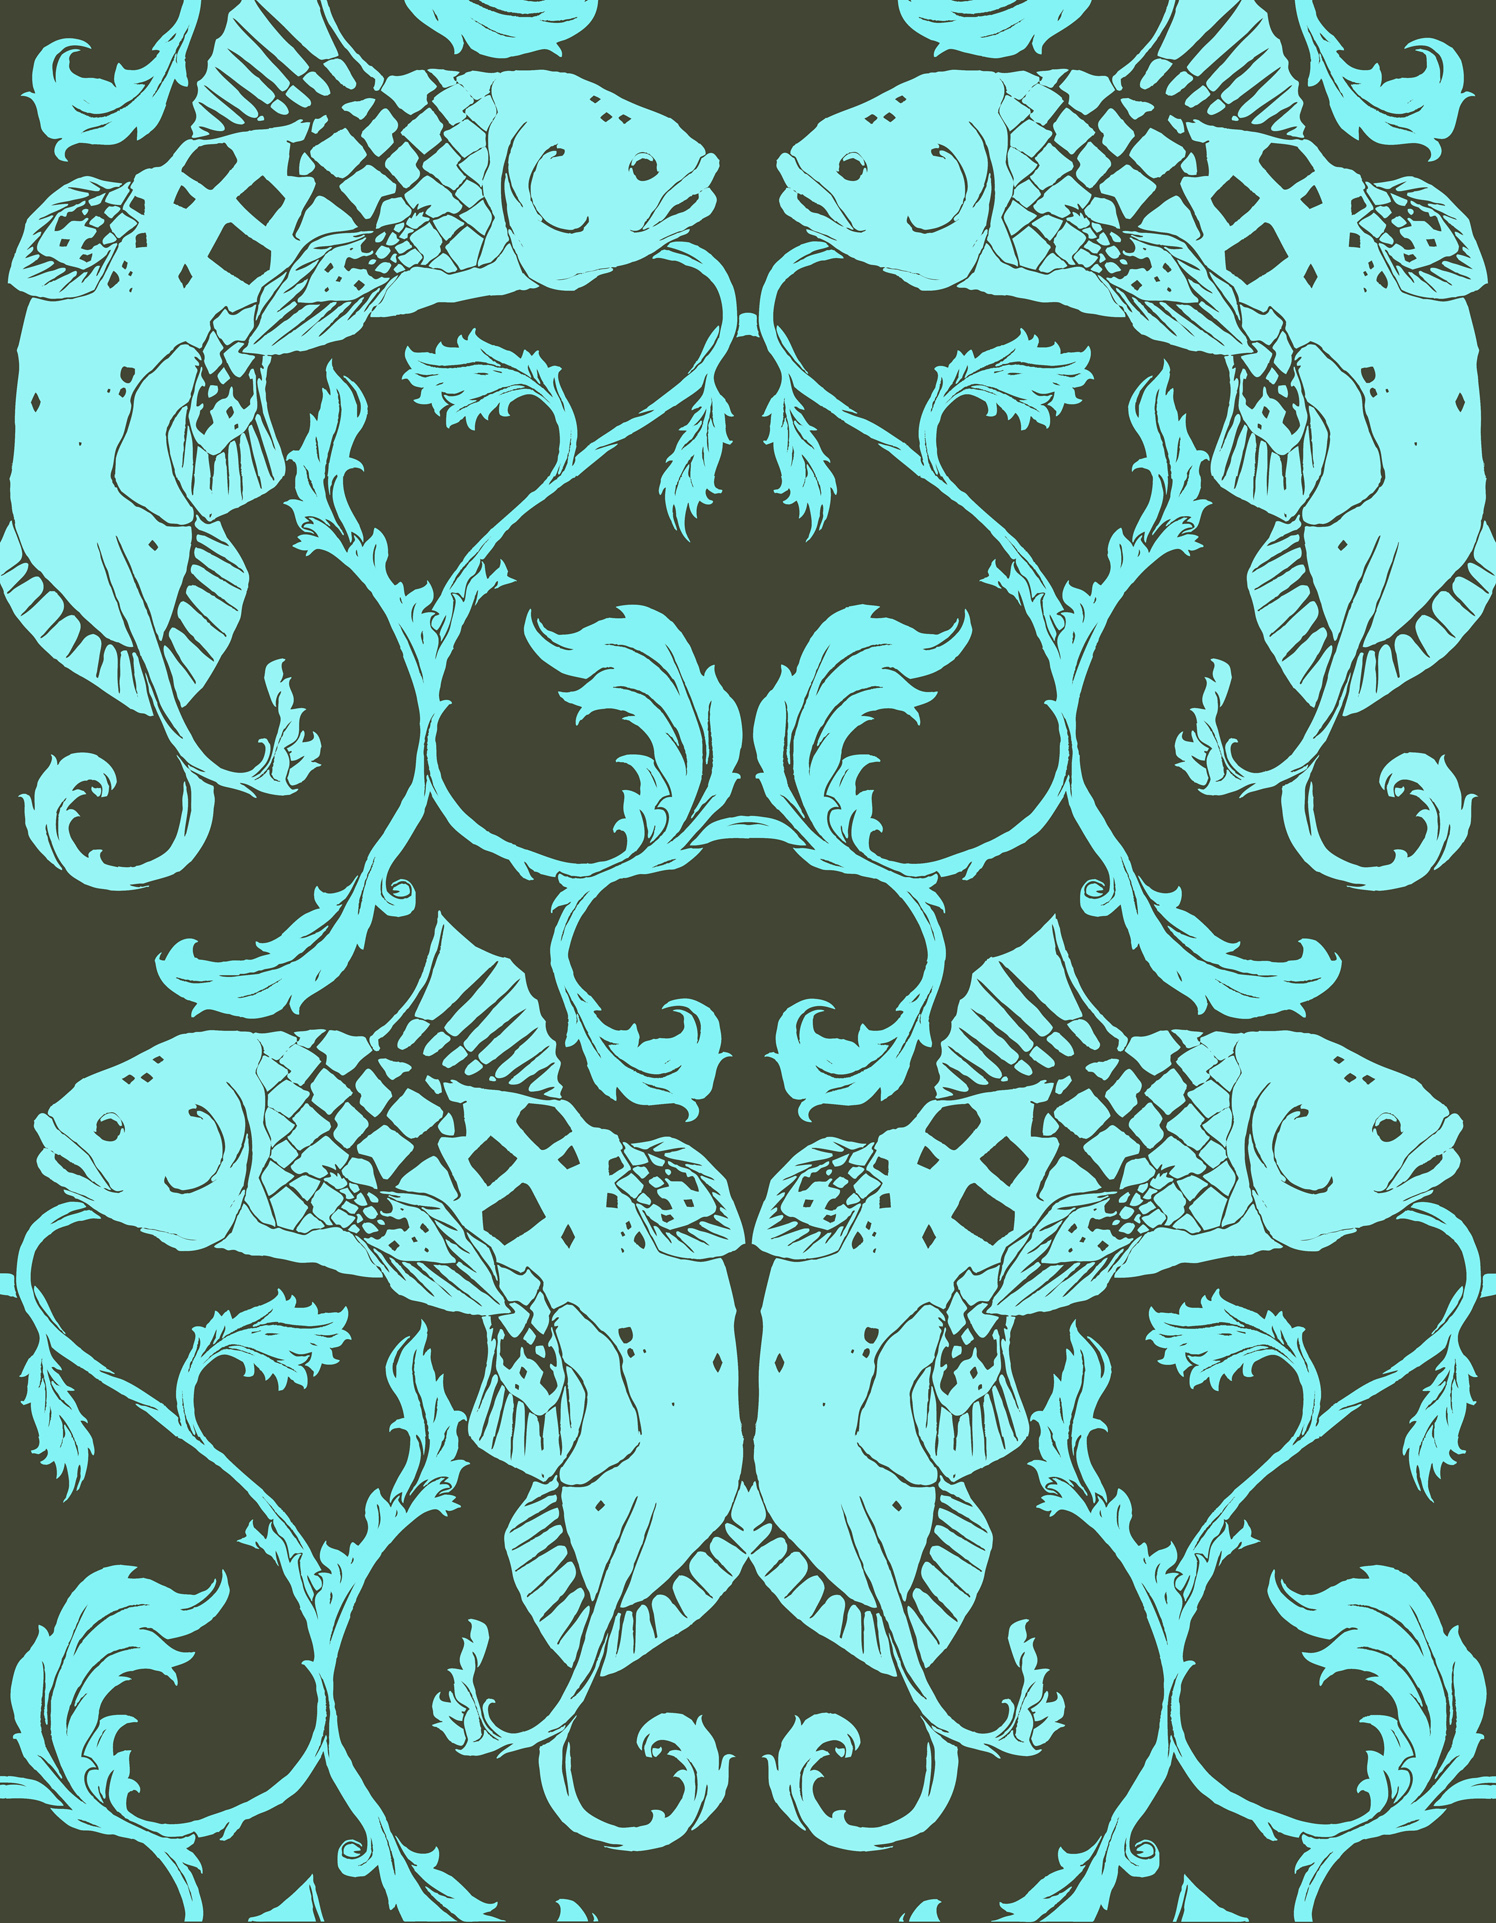 Coelacanth Repeat